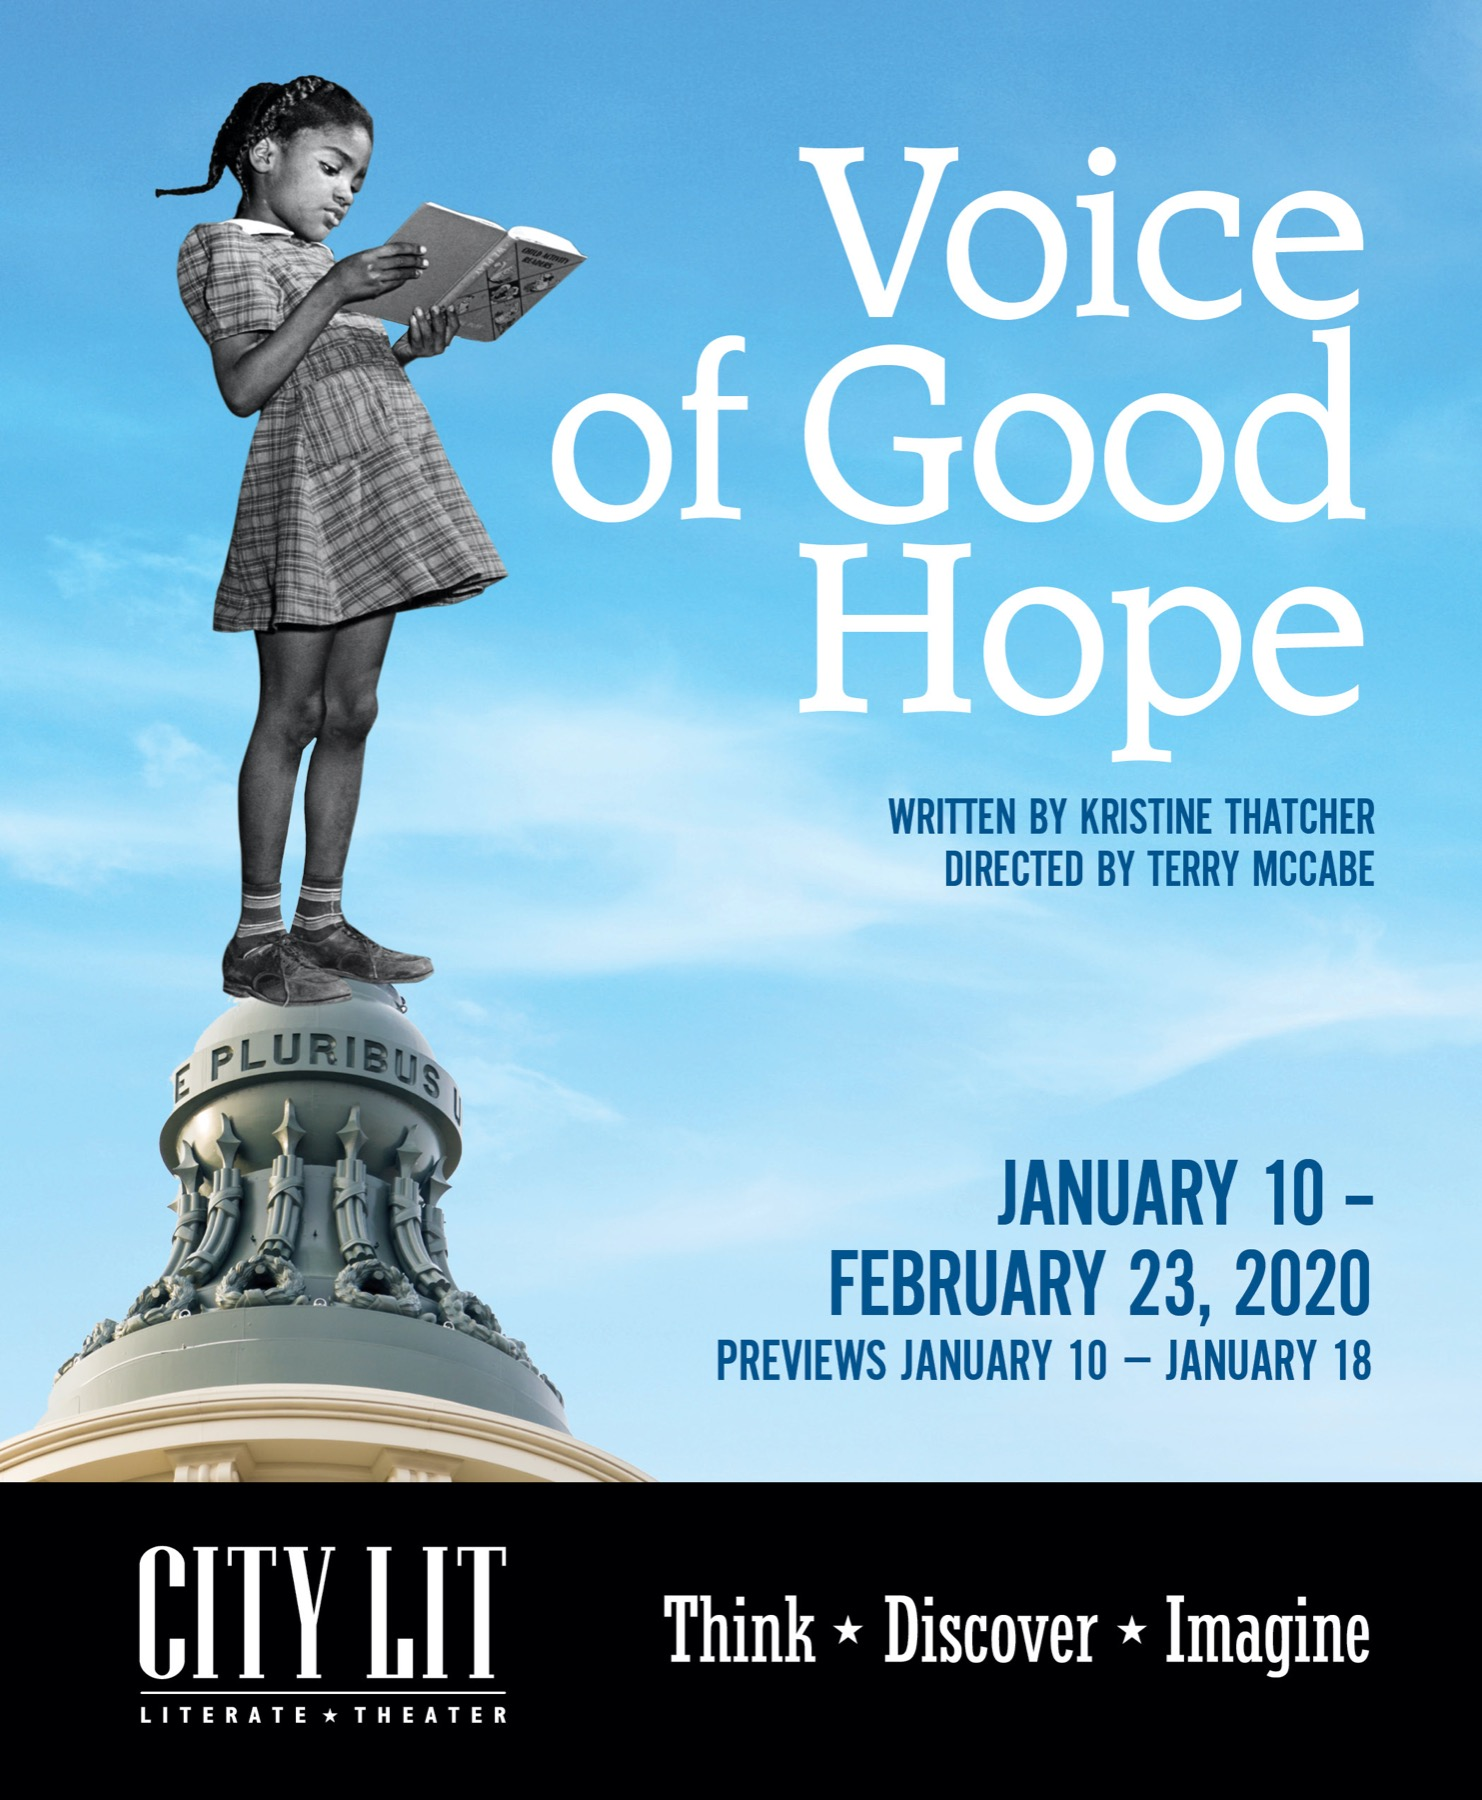 Voice of Good Hope